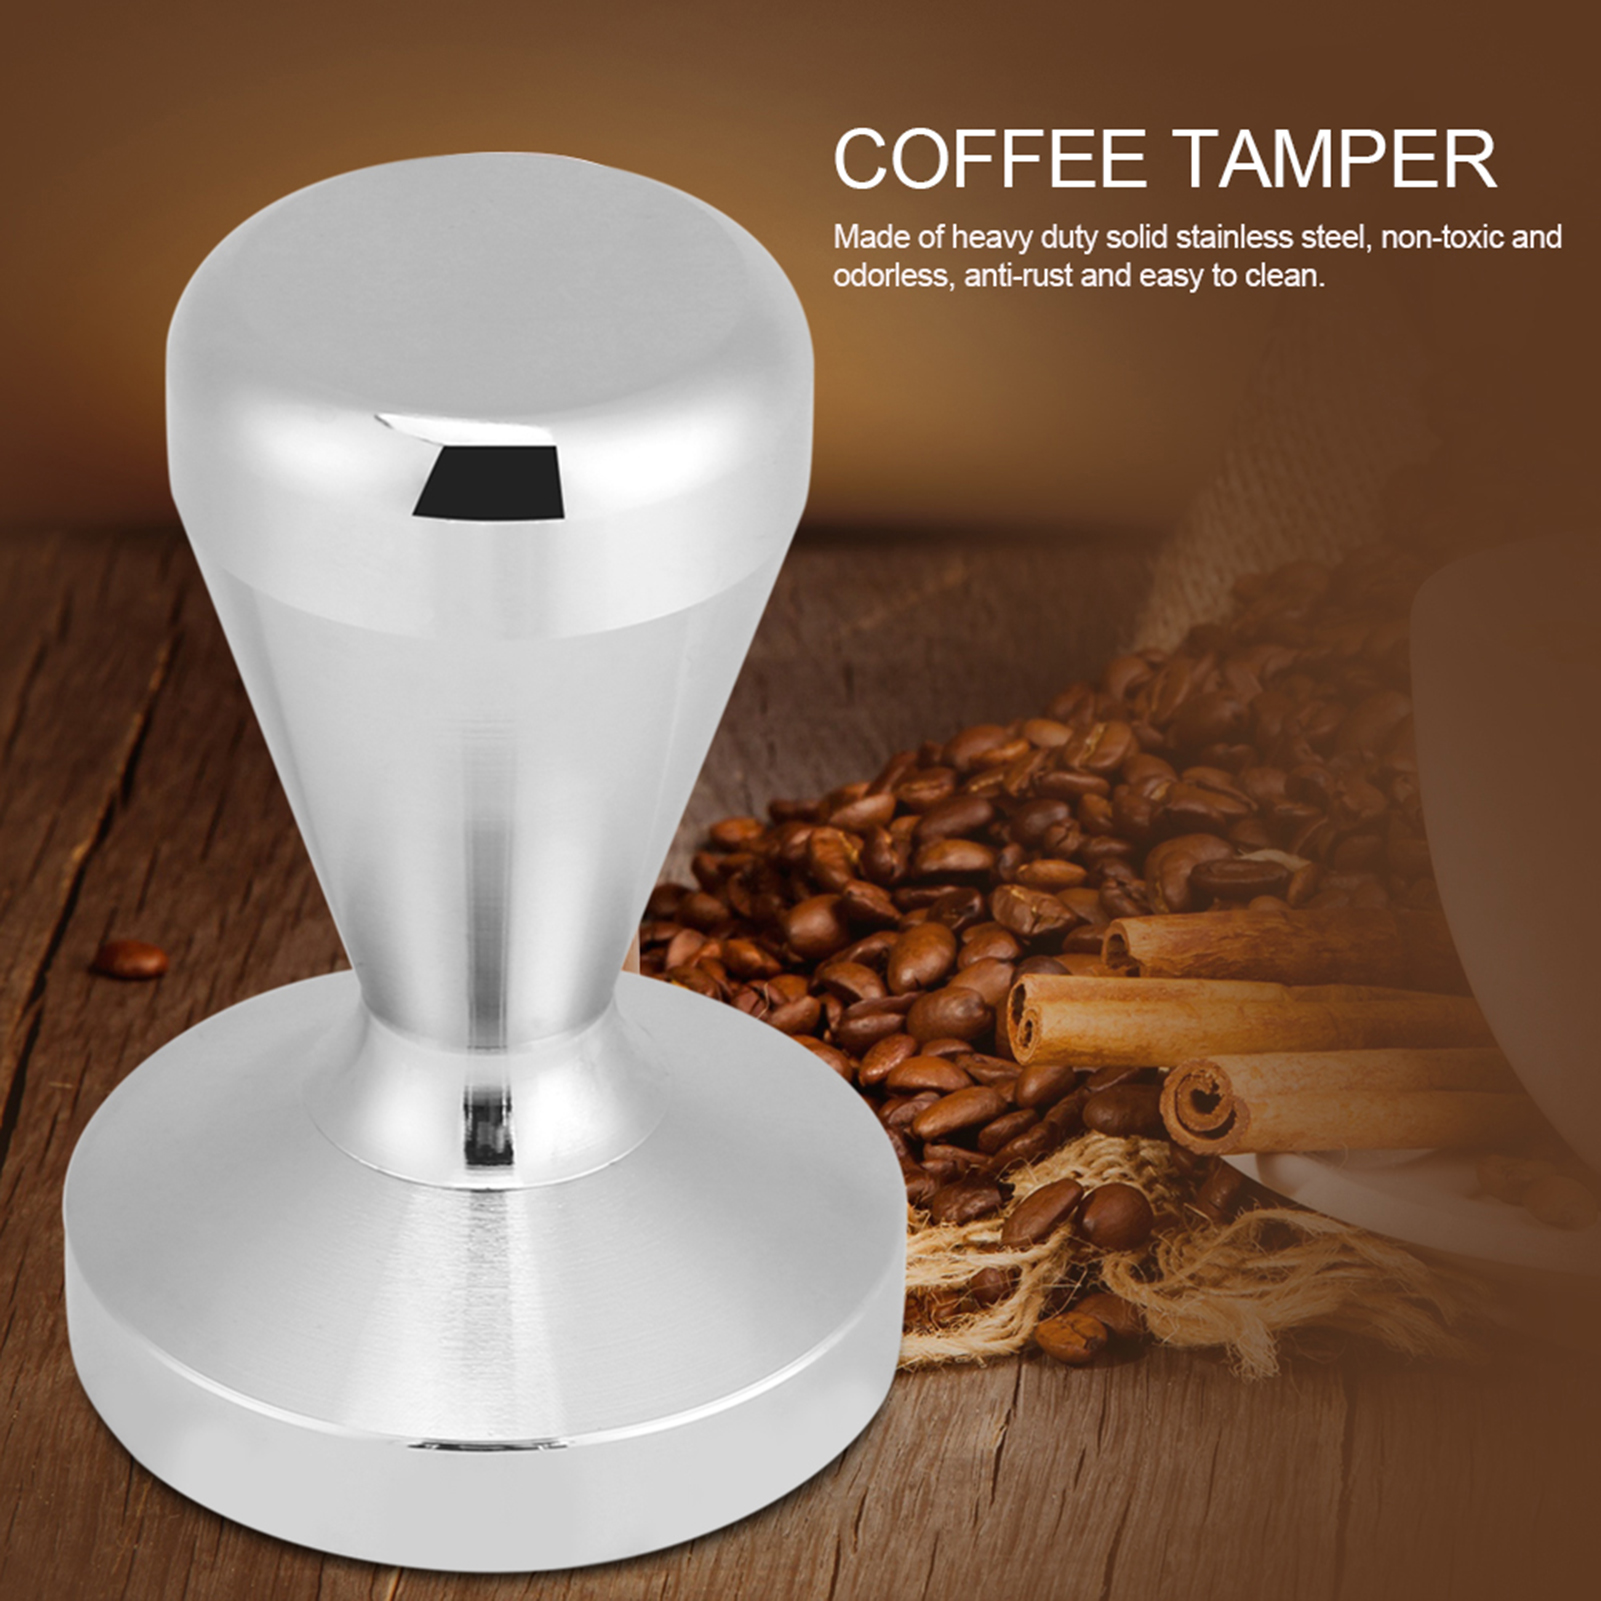 Stainless Steel Press Cafe Coffee Tamper Coffee Machine Maker Coffee Tamper JS